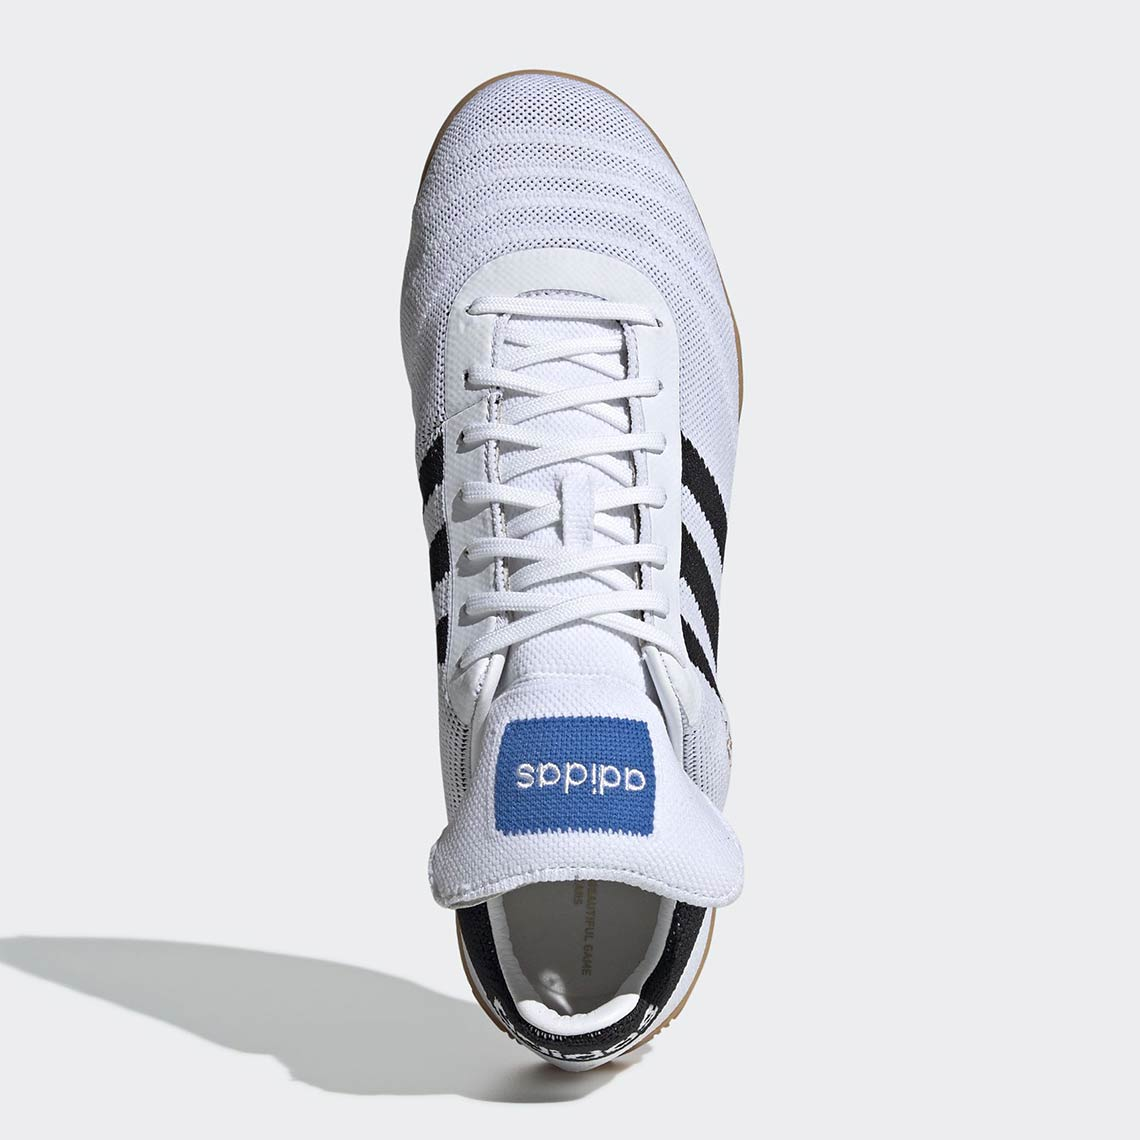 check out 90416 0f9db adidas Copa 70Y G26308 + F36986 Store List  SneakerNews.com